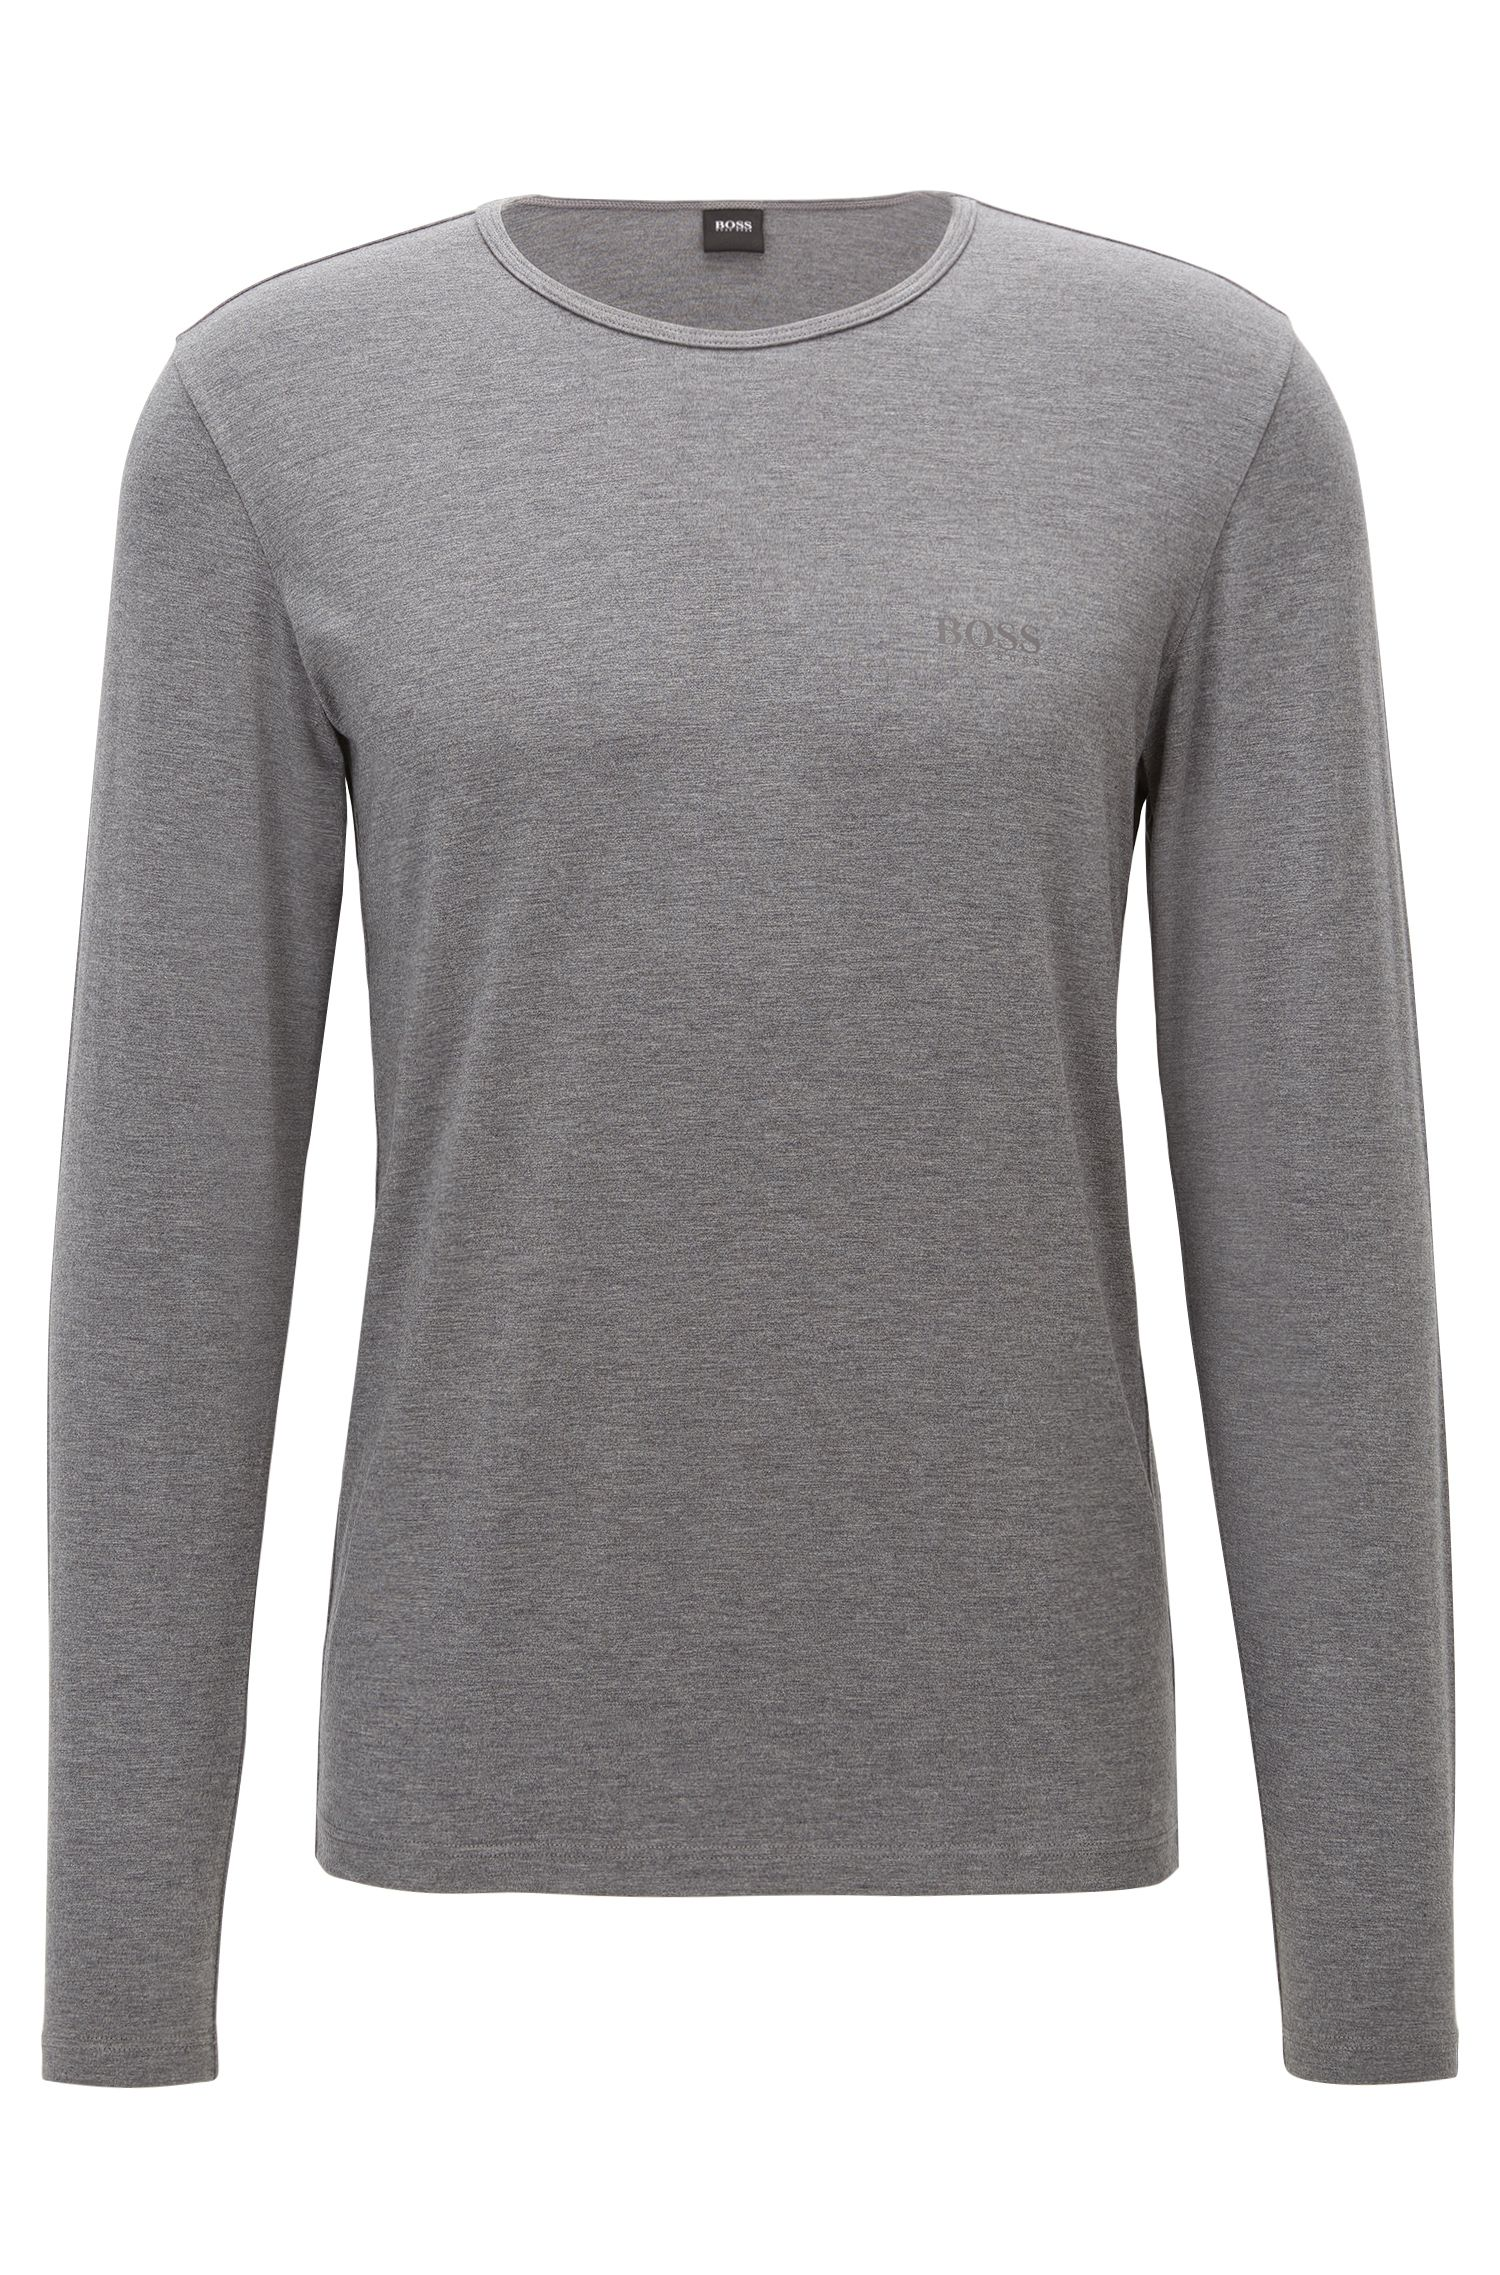 Long-sleeved T-shirt in heat-retaining fabric